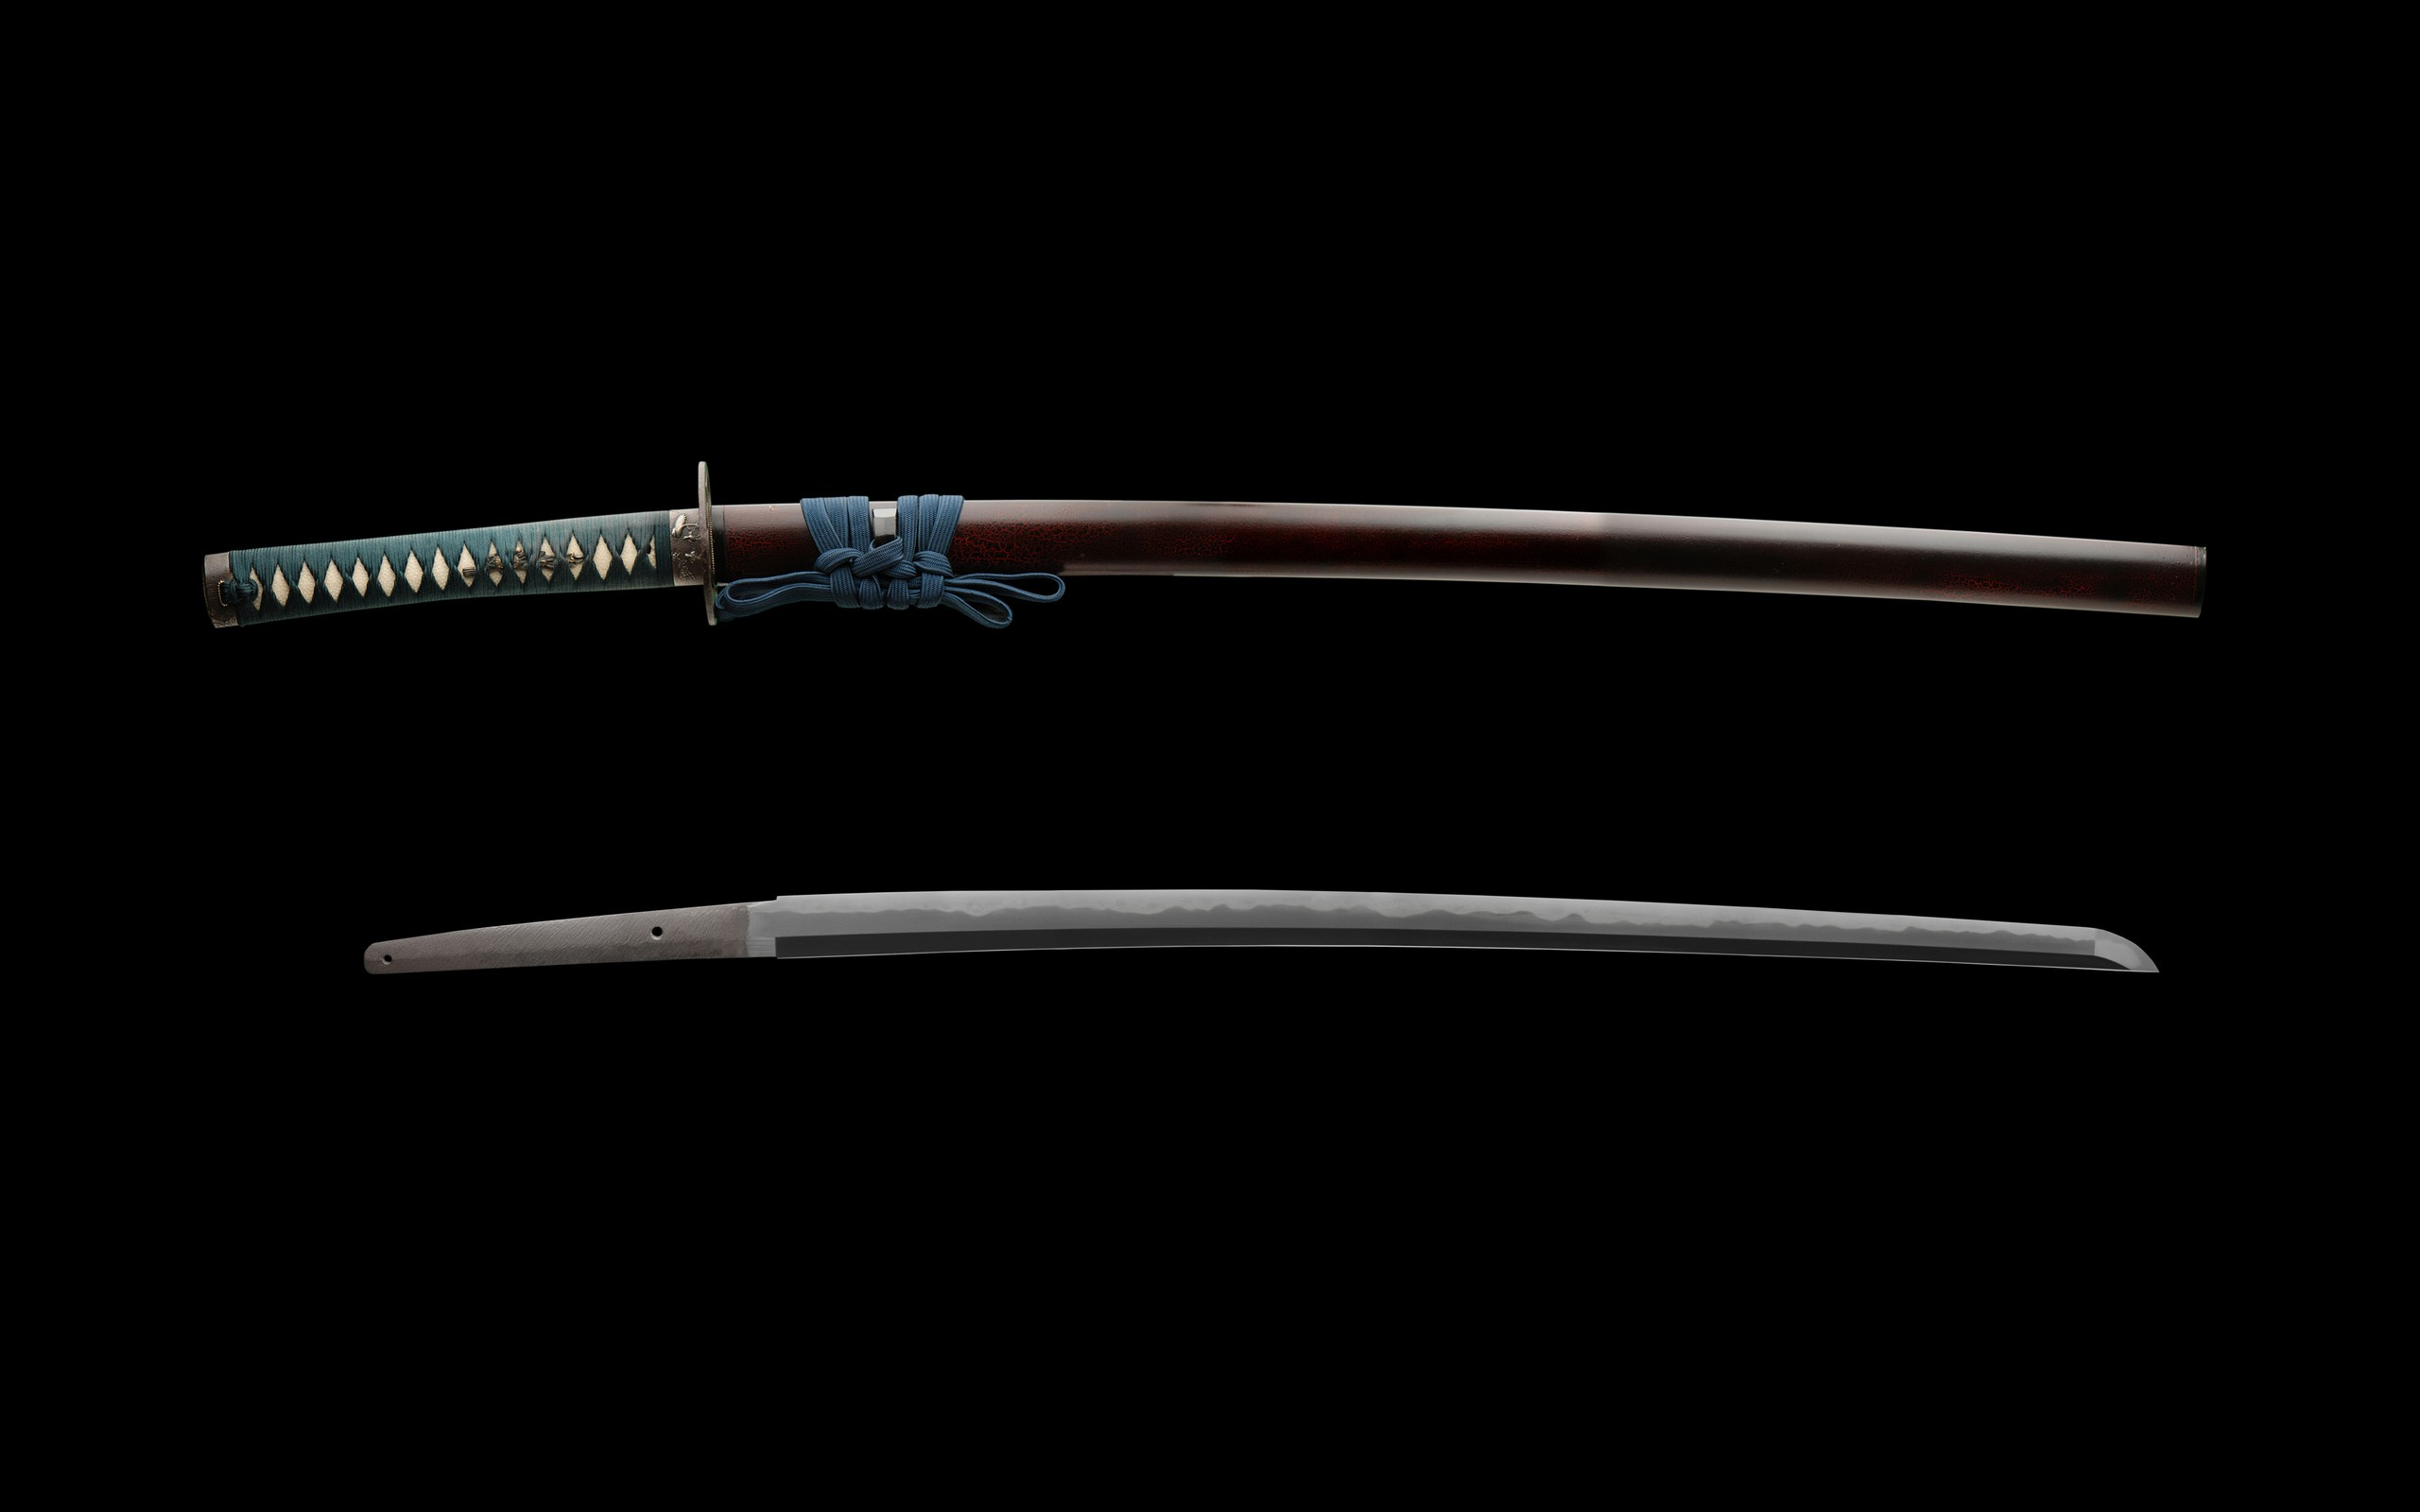 Katana Weapons Blade Swords Black Background Wallpaper